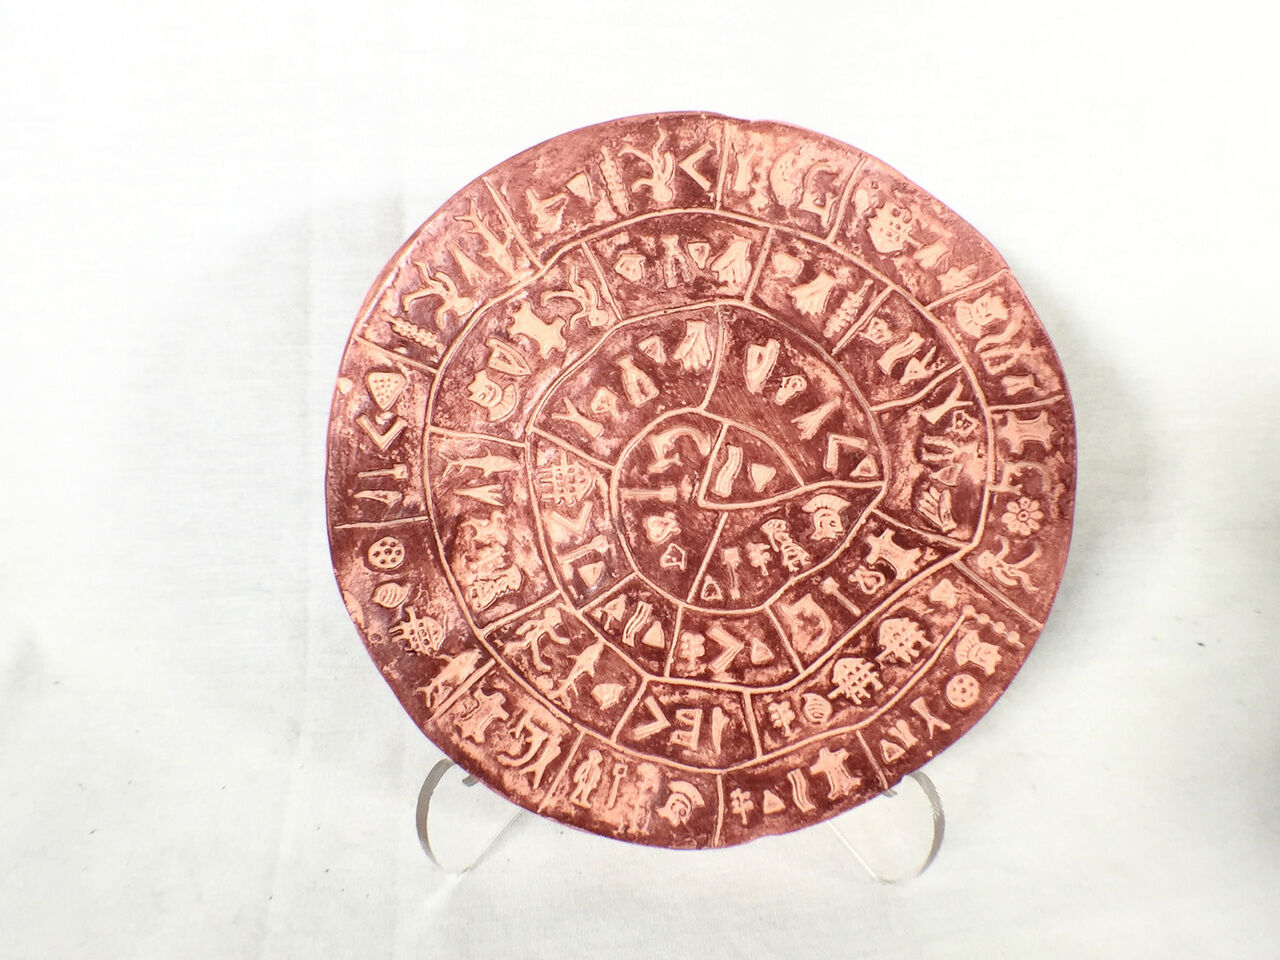 Phaistos Disc, Minoan Mystery Replica  Very Detailed Item, Ancient Mystery